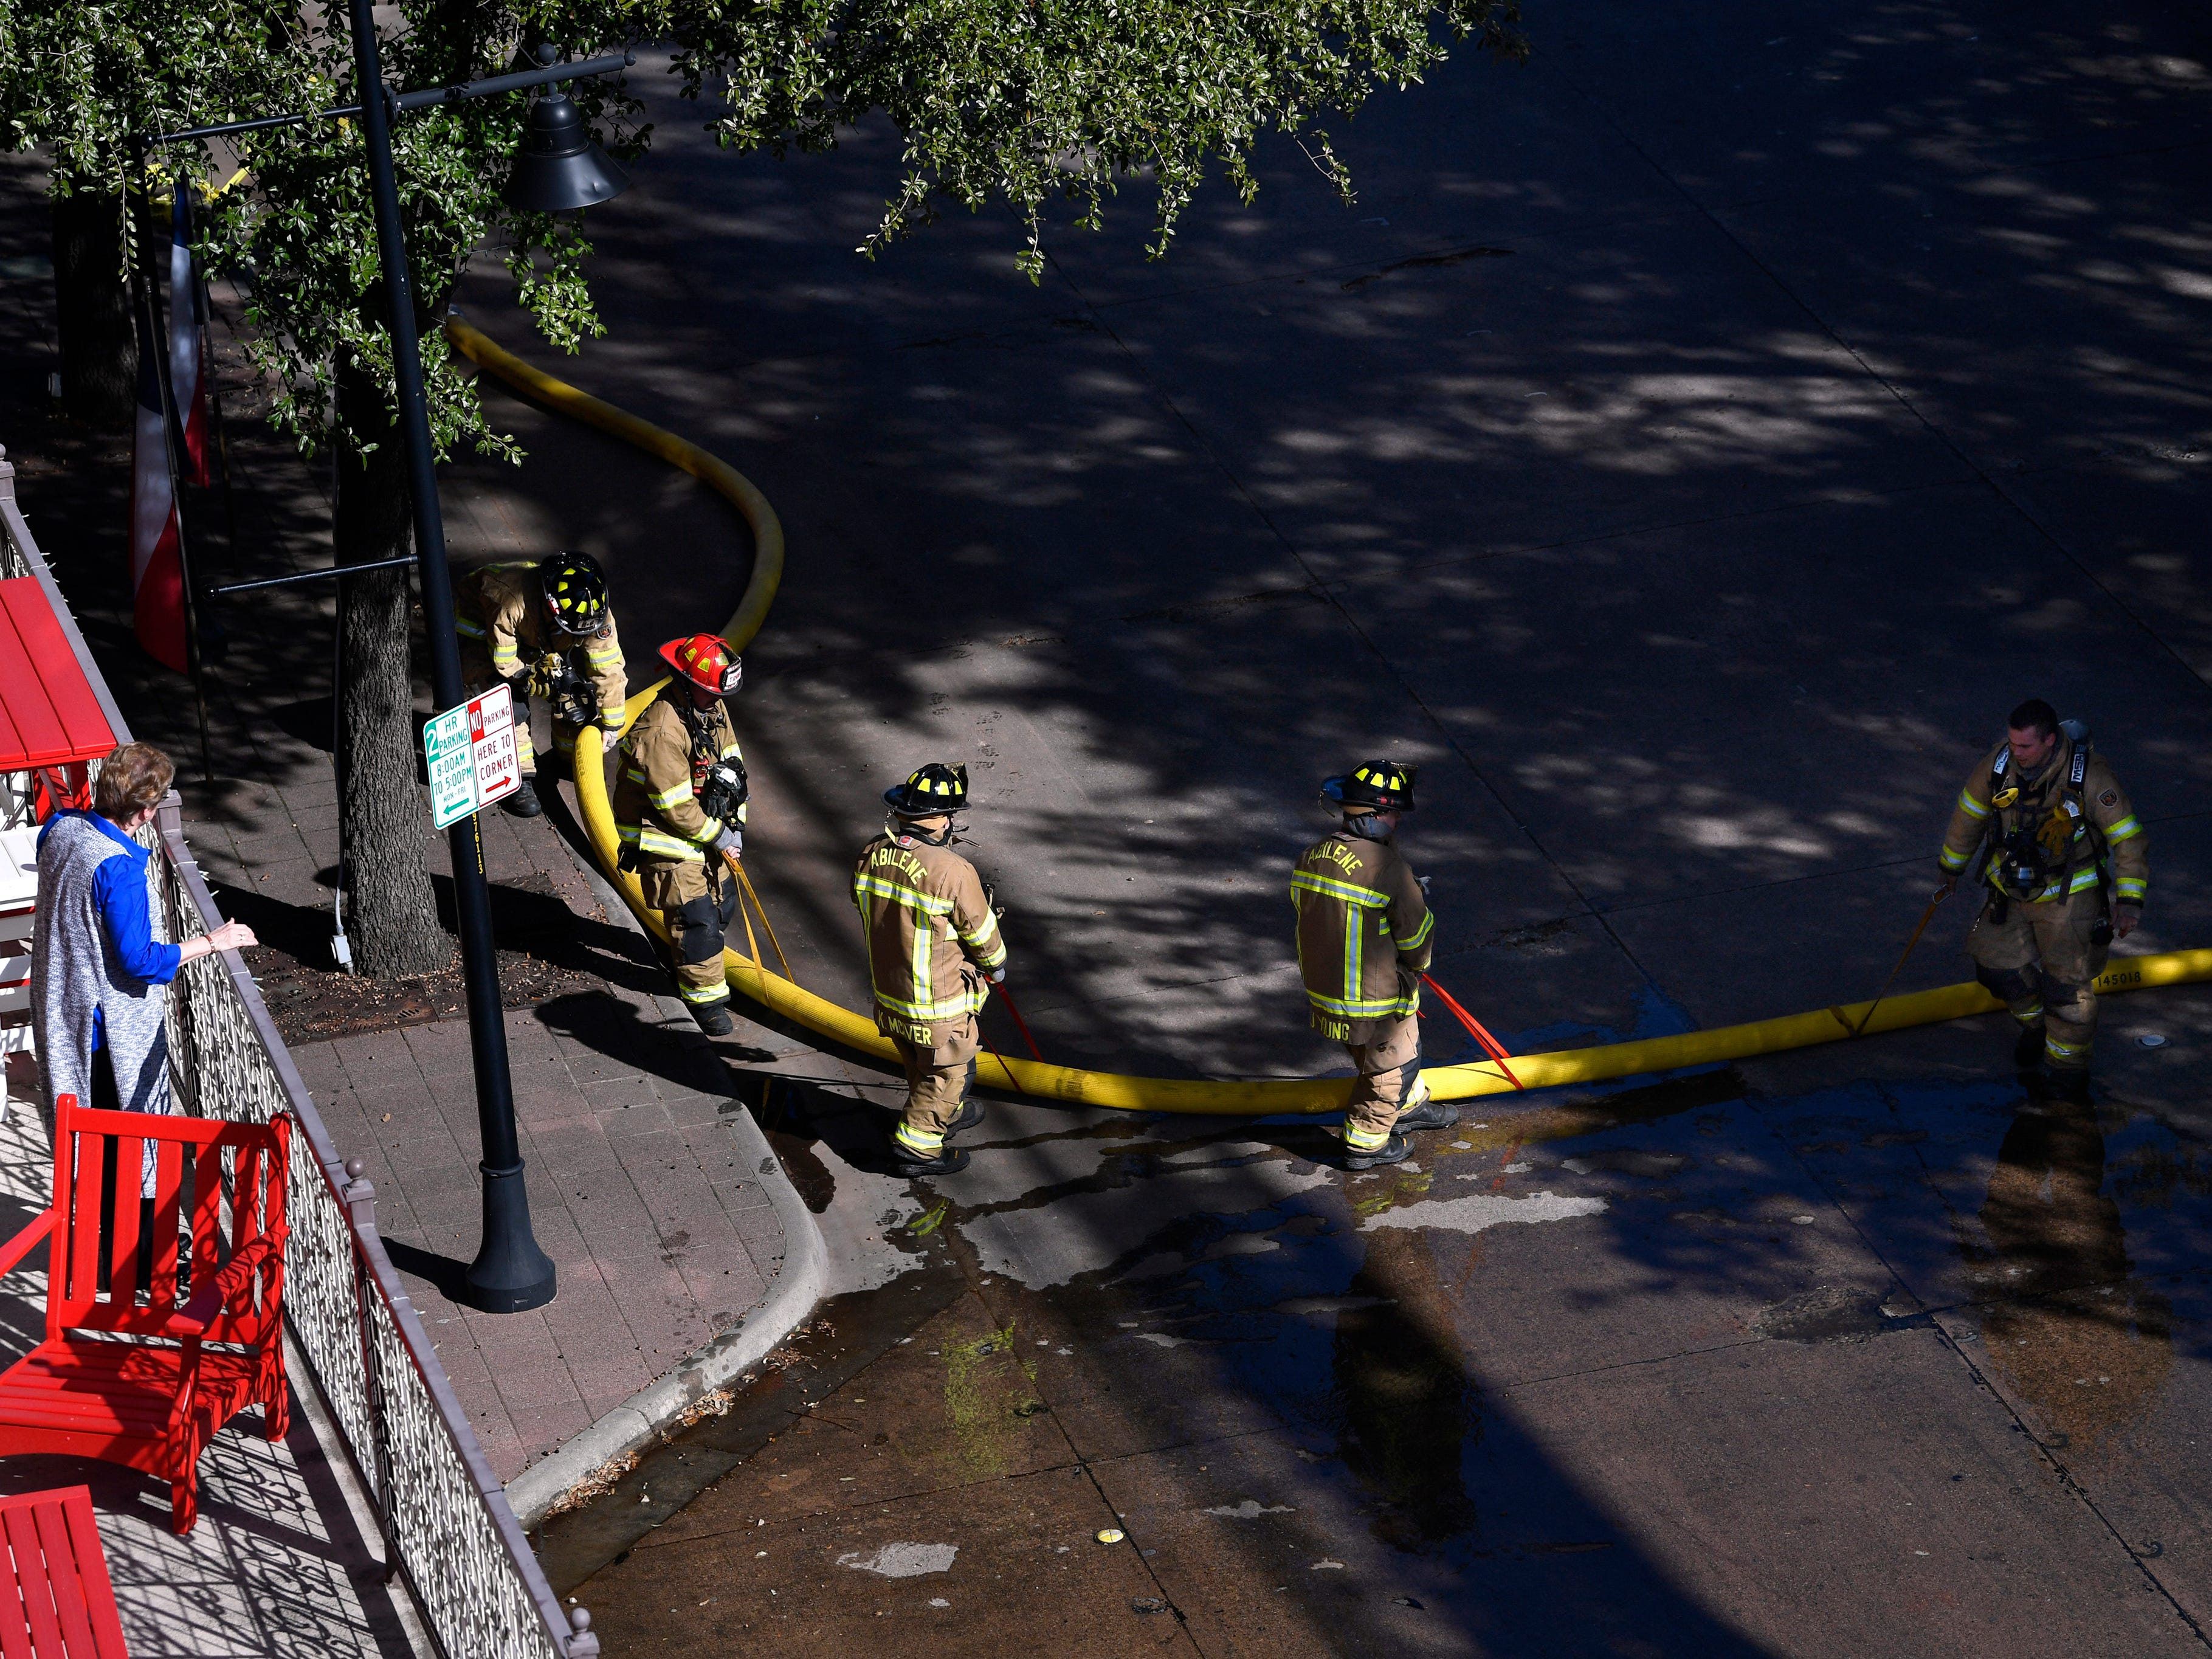 A woman watches Abilene firefighters pull a supply hose across Cypress St. as they fight a two-alarm fire at the Abilene Reporter-News Thursday Nov. 15, 2018. The fire was called in at 9:20 a.m., at one time all three of the city's ladder trucks were employed during the fight.